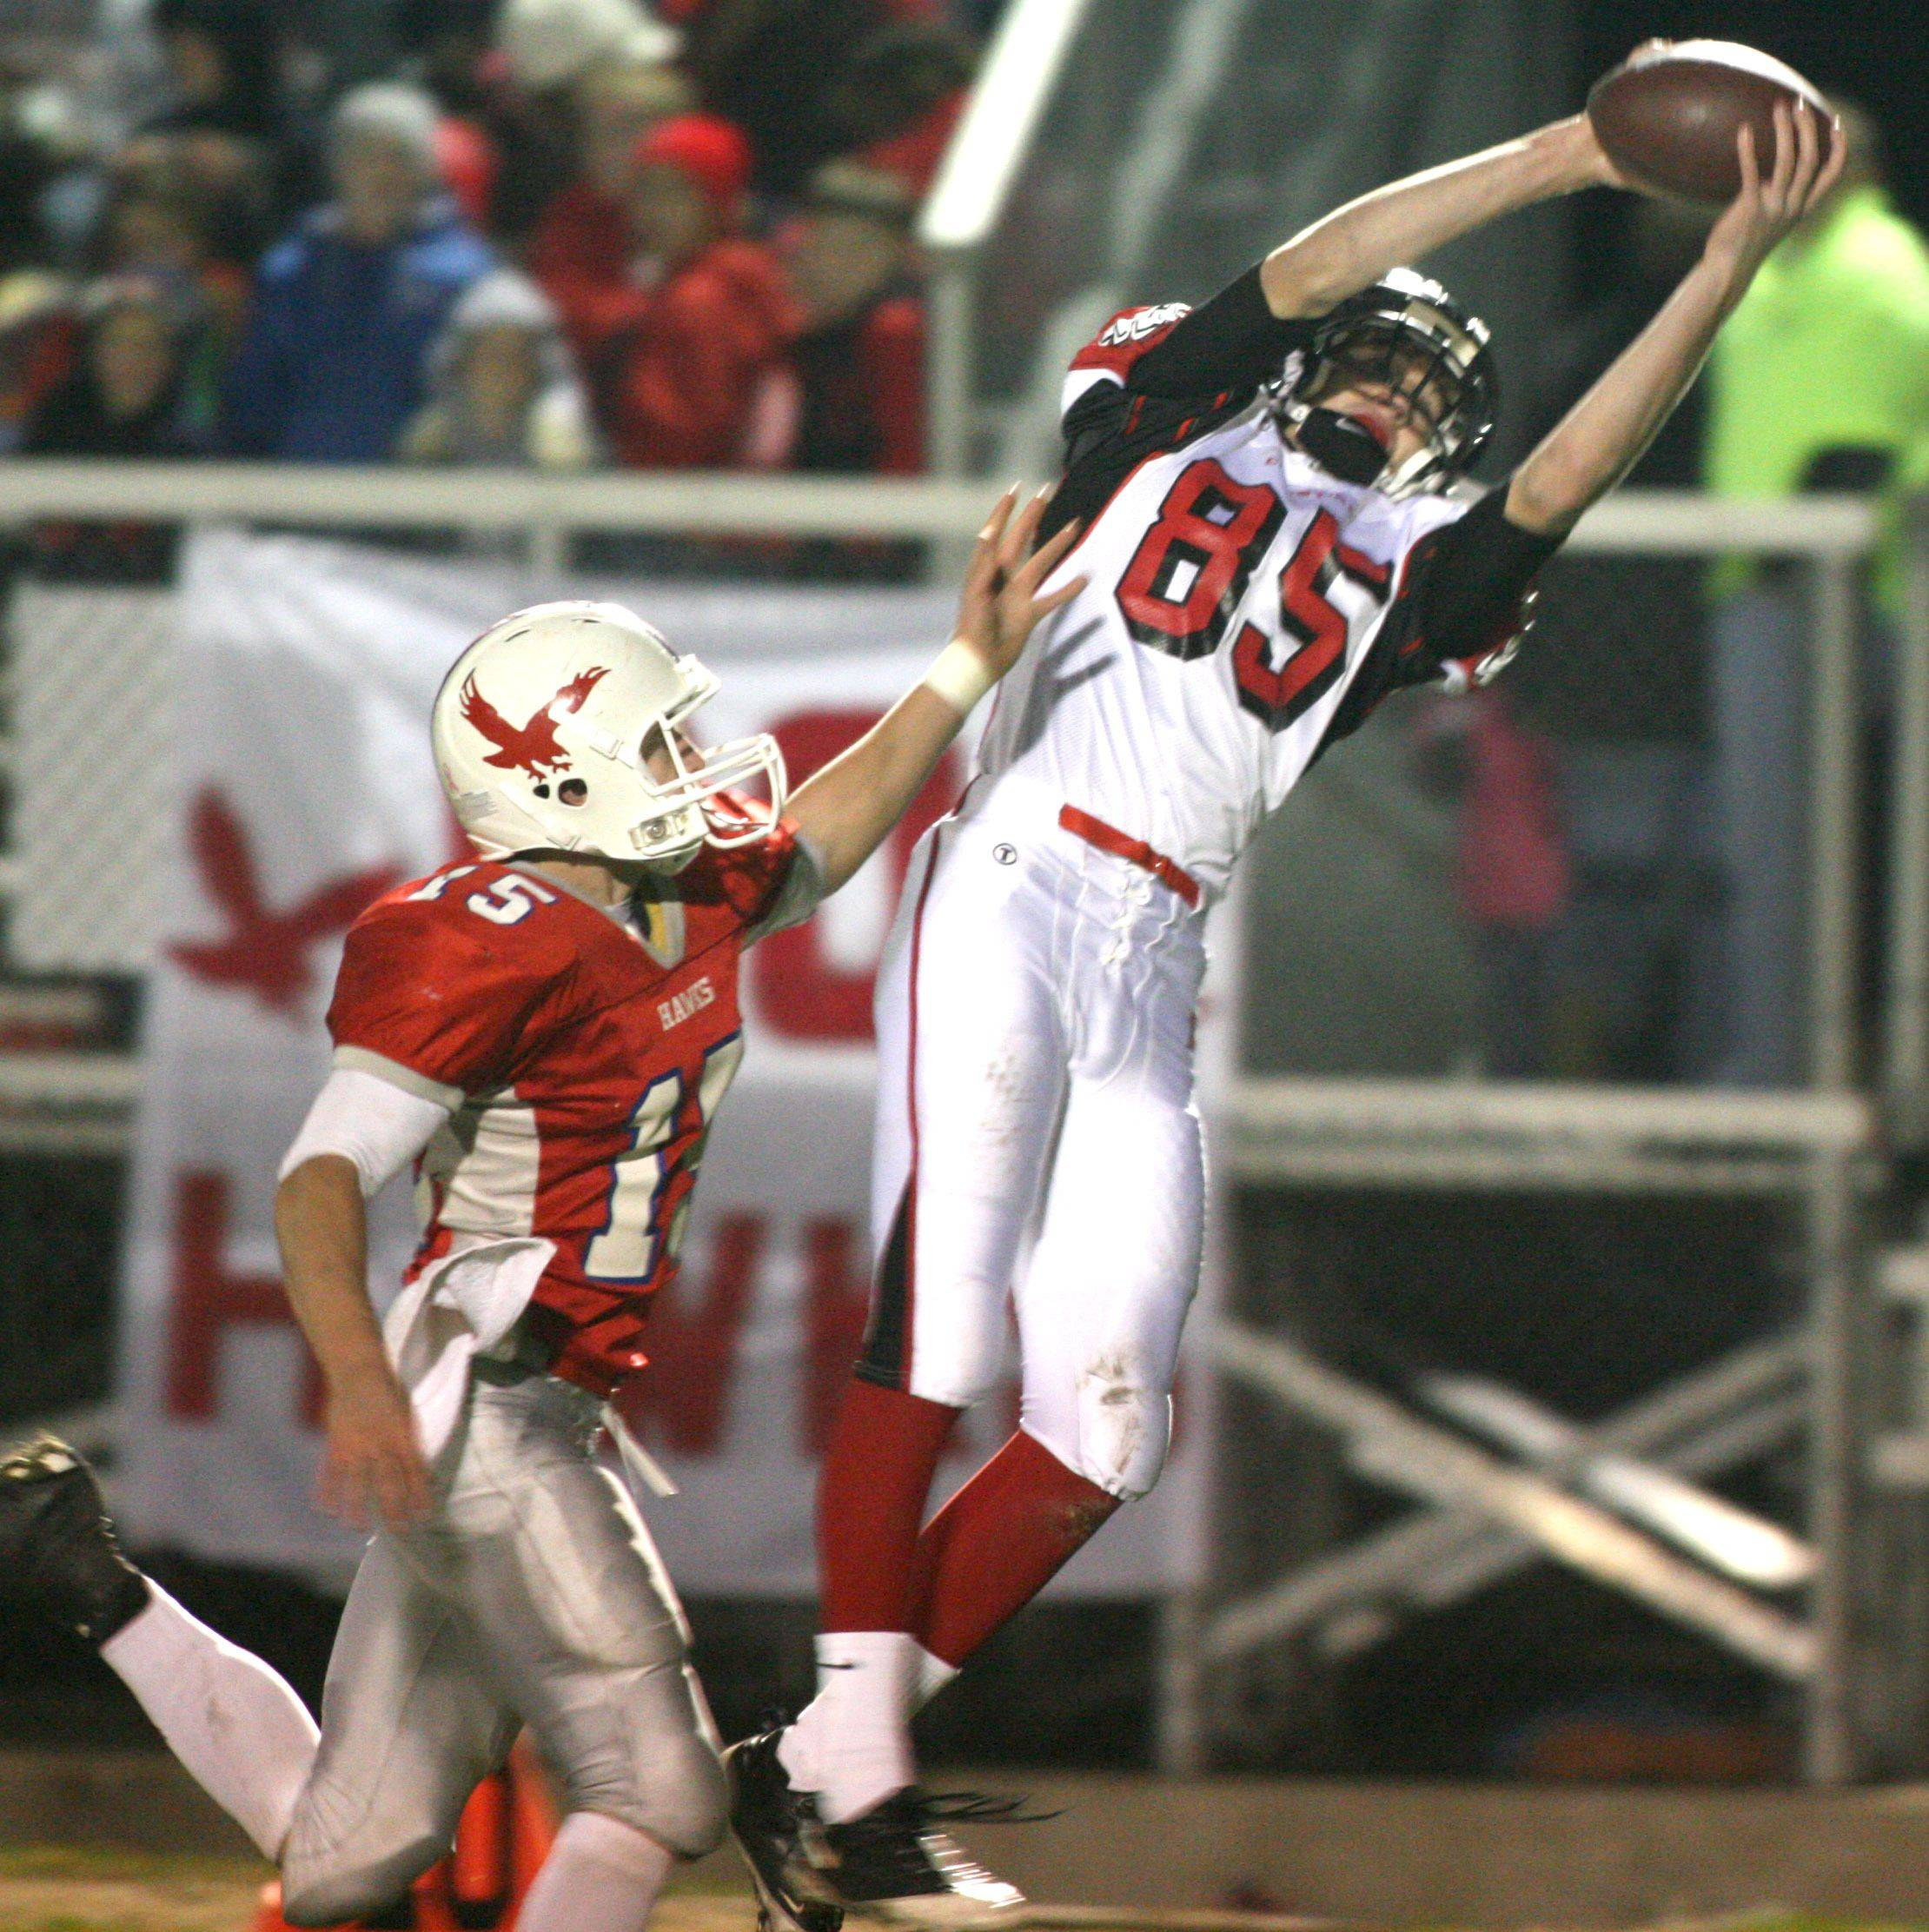 Aurora Christian's Cory Windle hauls in a pass in front of Oregon's Josh Egyed at Oregon during a playoff game two weeks ago. The Eagles host Tolono Unity in a Class 3A semifinal Saturday.